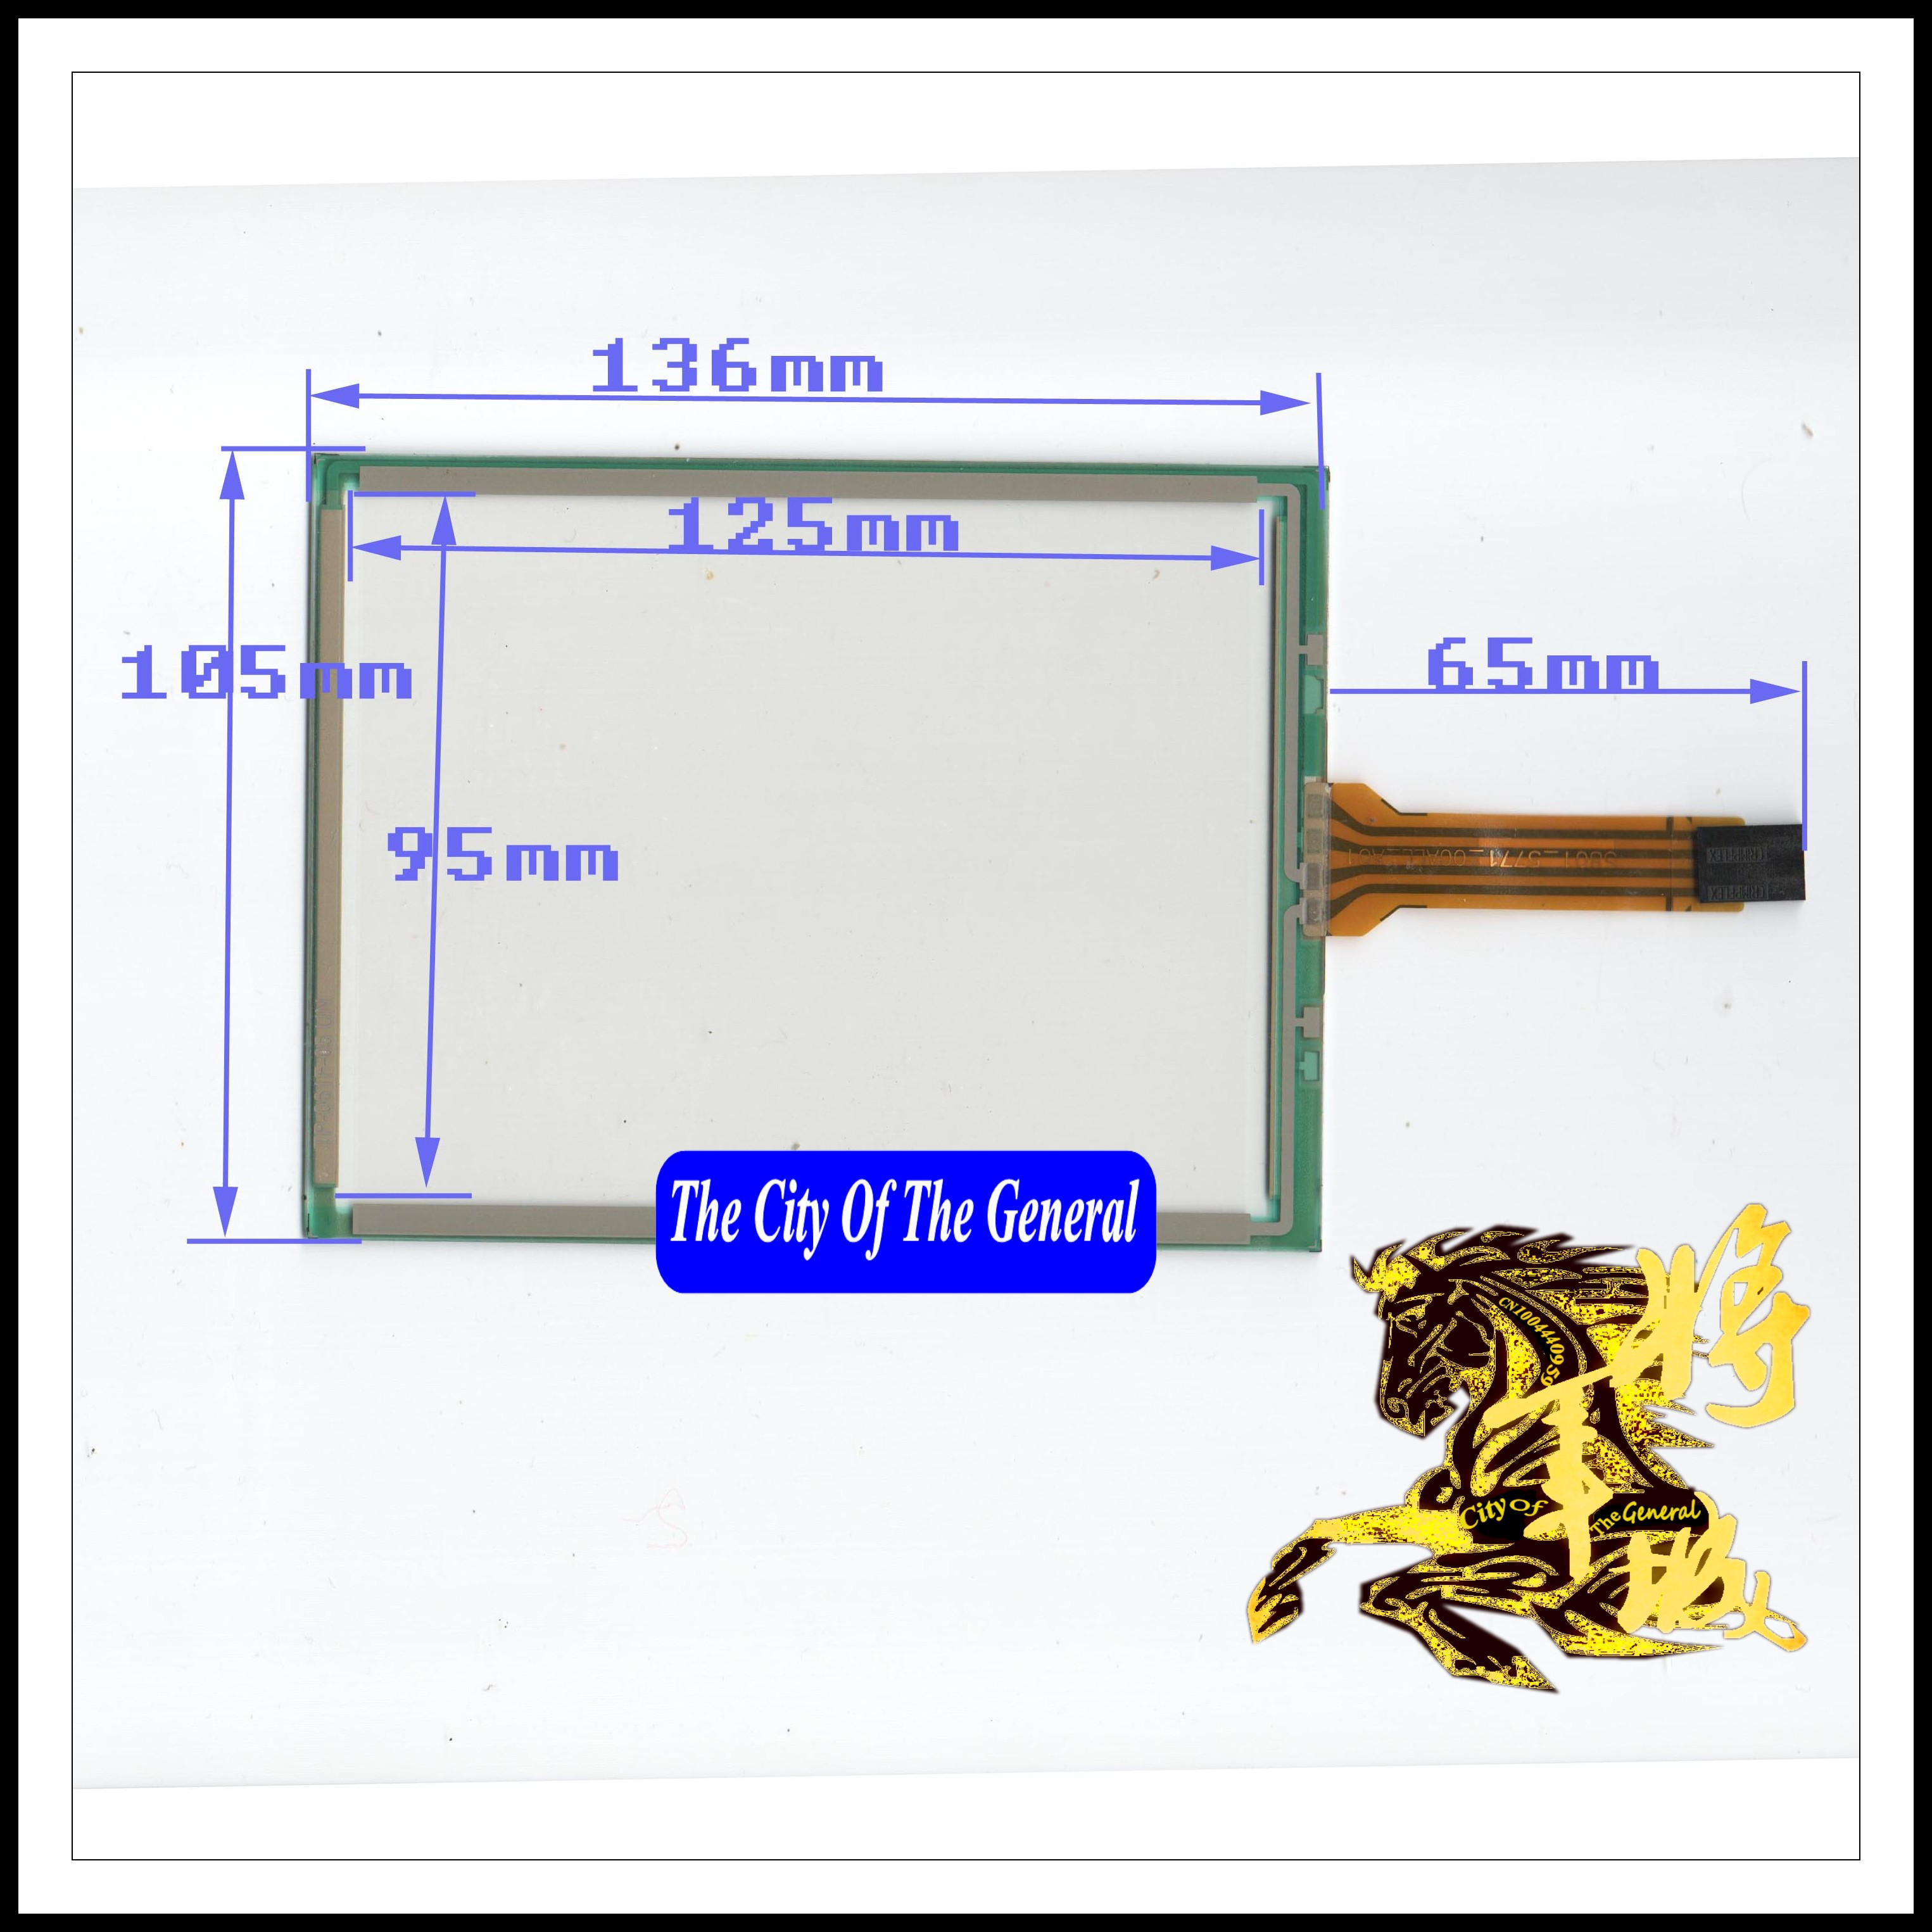 GENCTY For 6.1-inch 136 * 105 four-wire resistive screen W-X